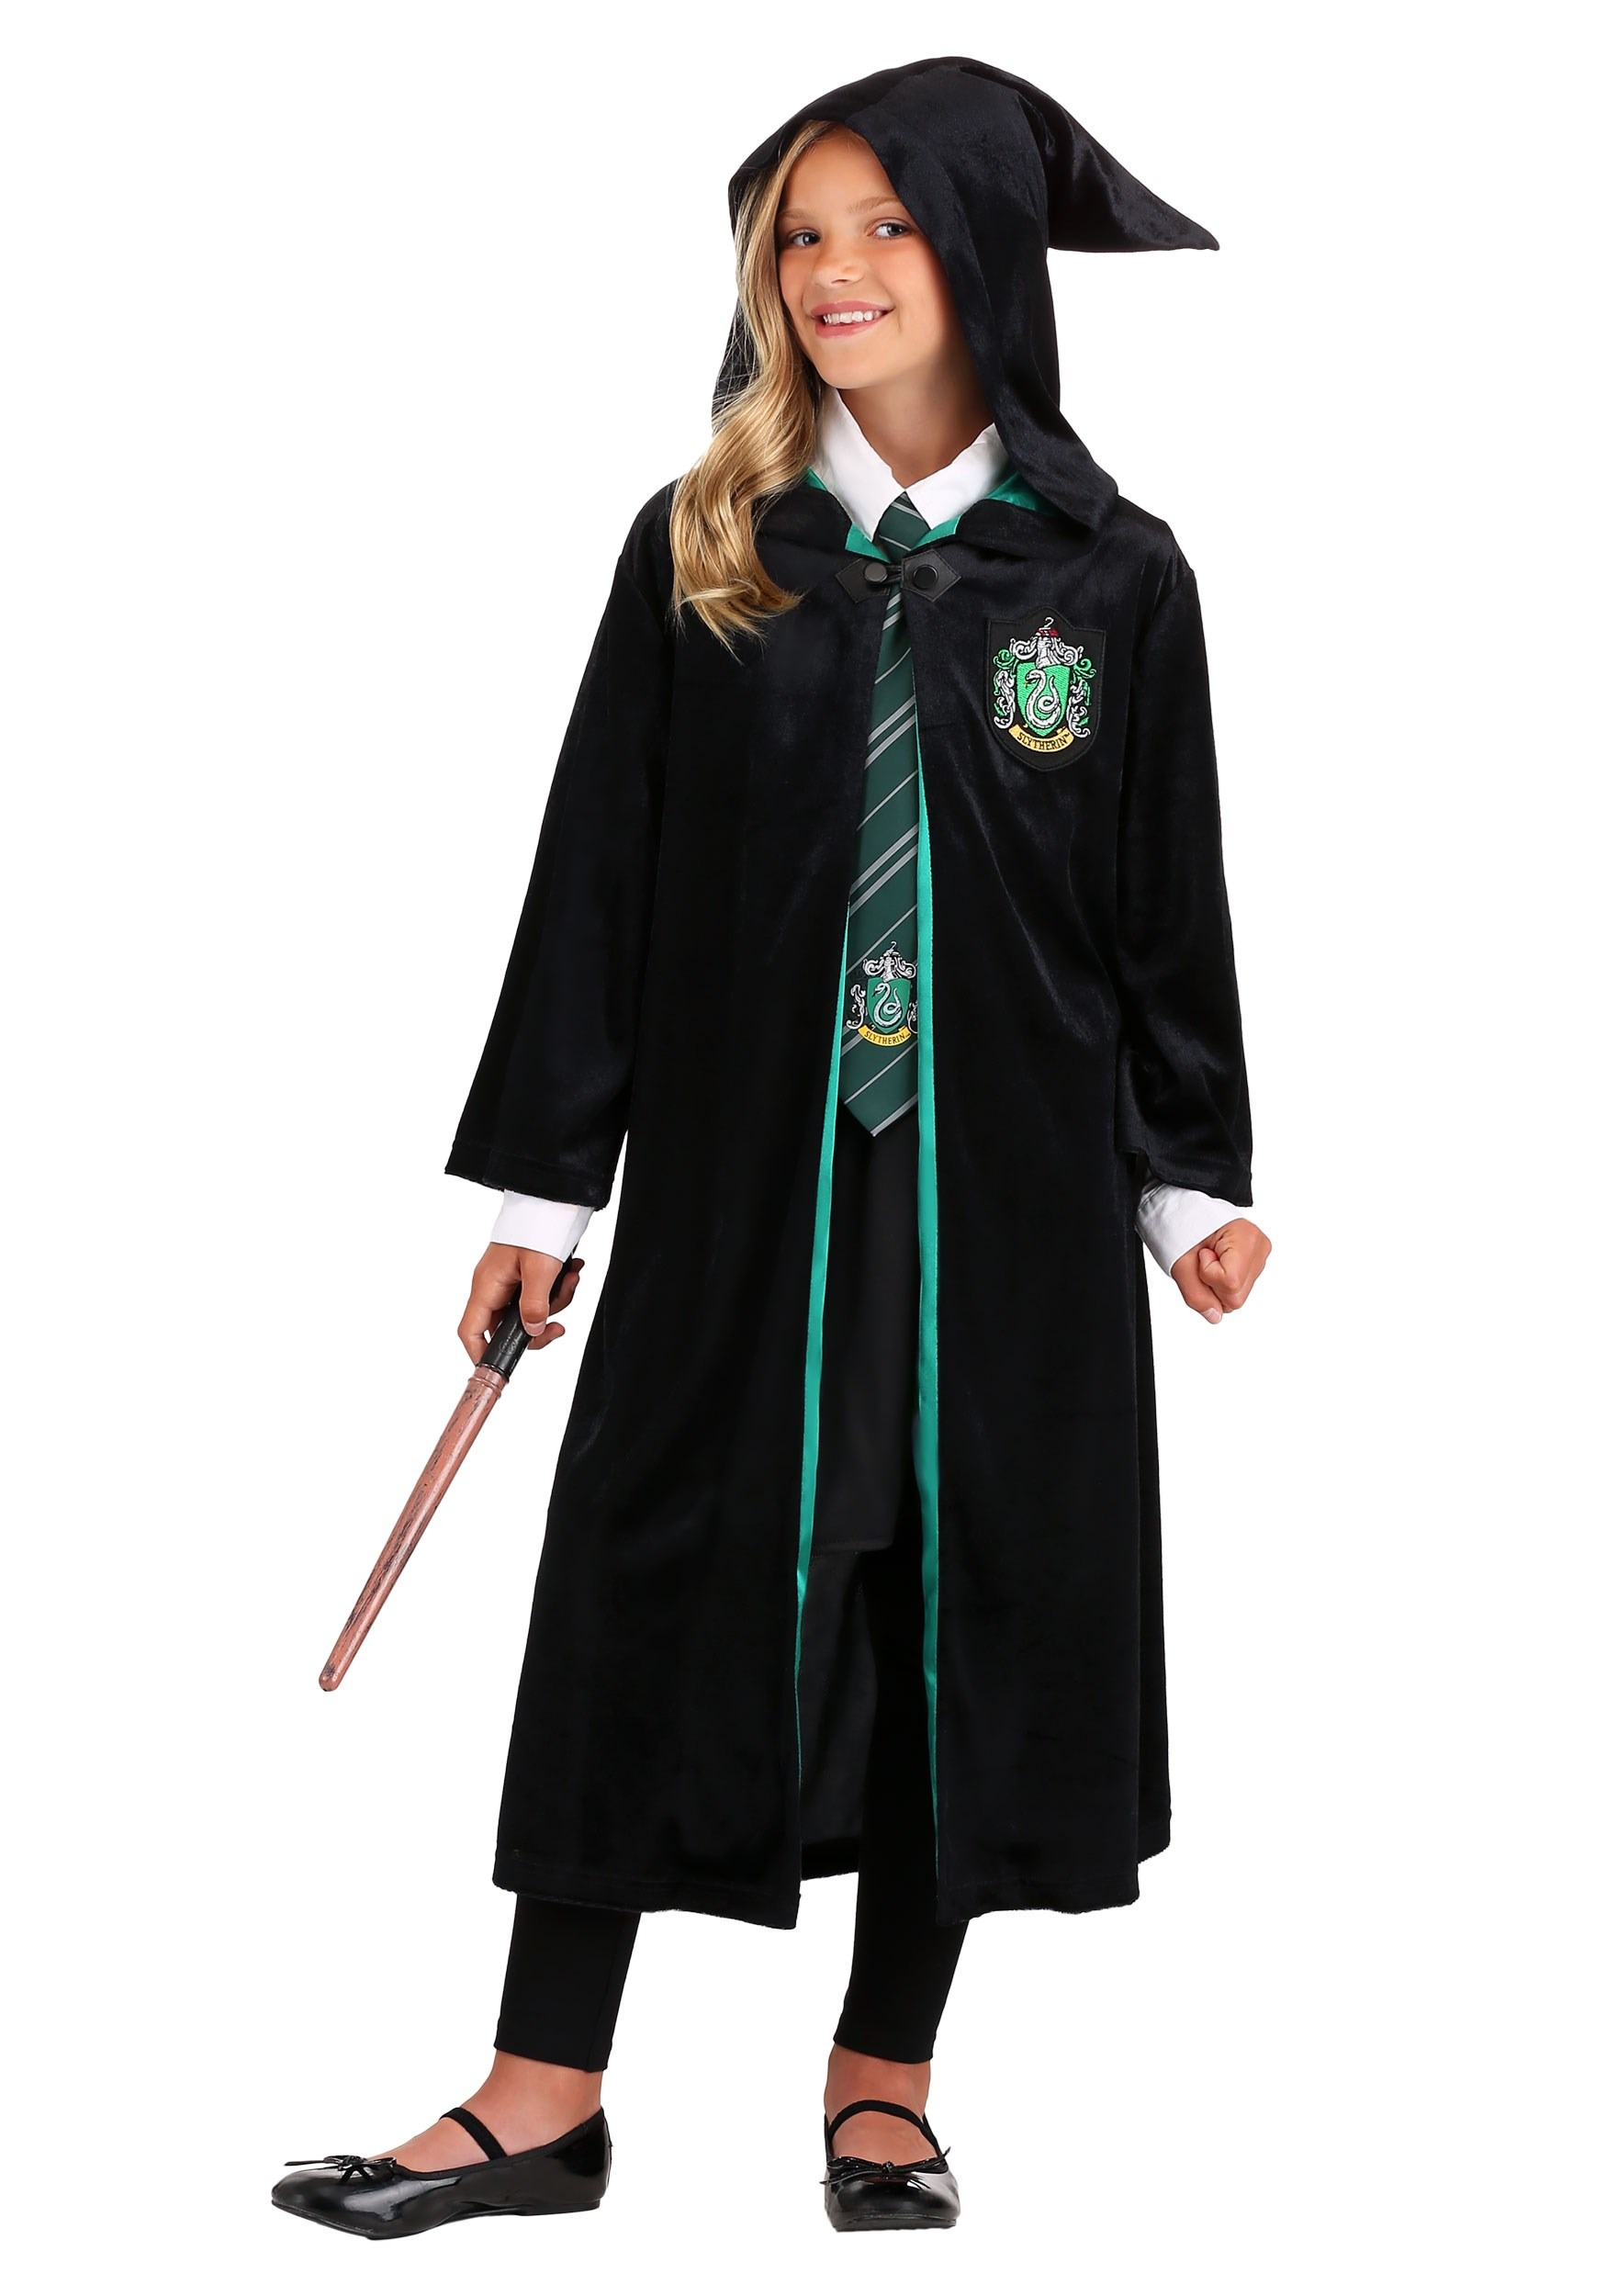 Kids Harry Potter Deluxe Slytherin Robe Costume